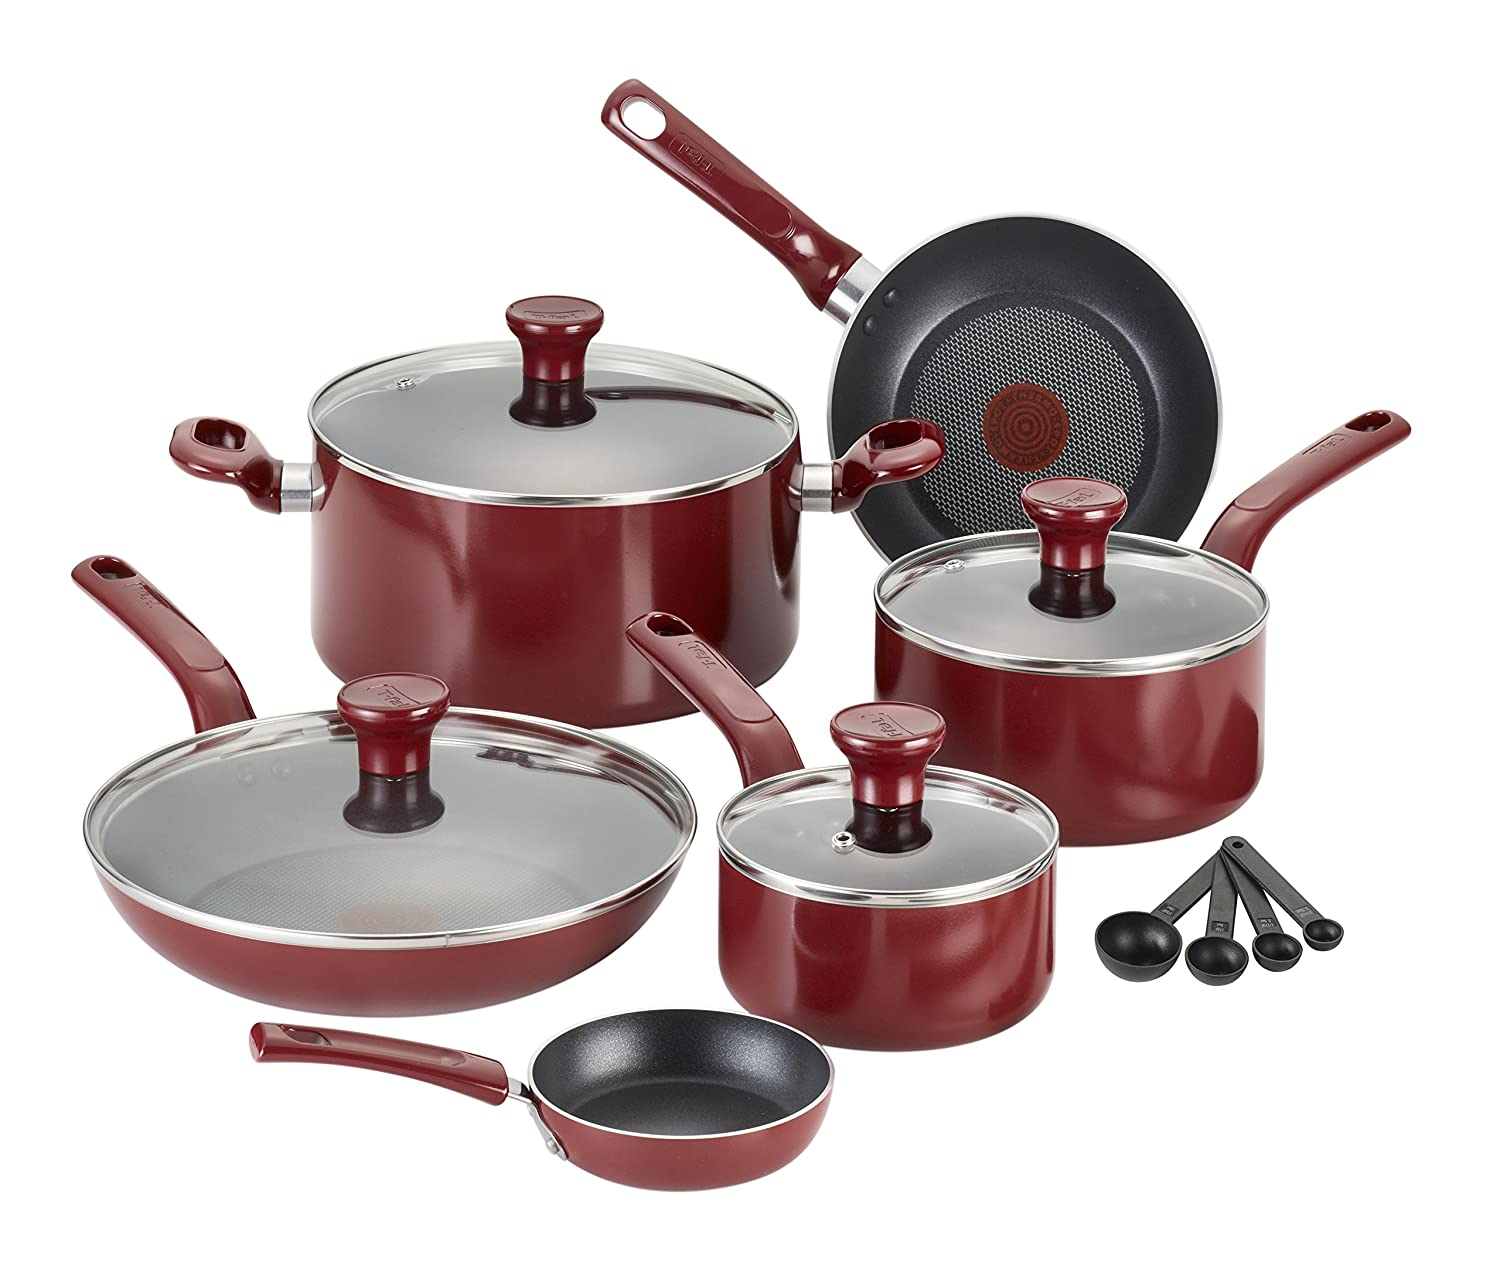 T-fal C912SE / C514SE Excite Nonstick Thermo-Spot Dishwasher Safe Oven Safe PFOA Free Cookware Set, 14.5-Piece, Red